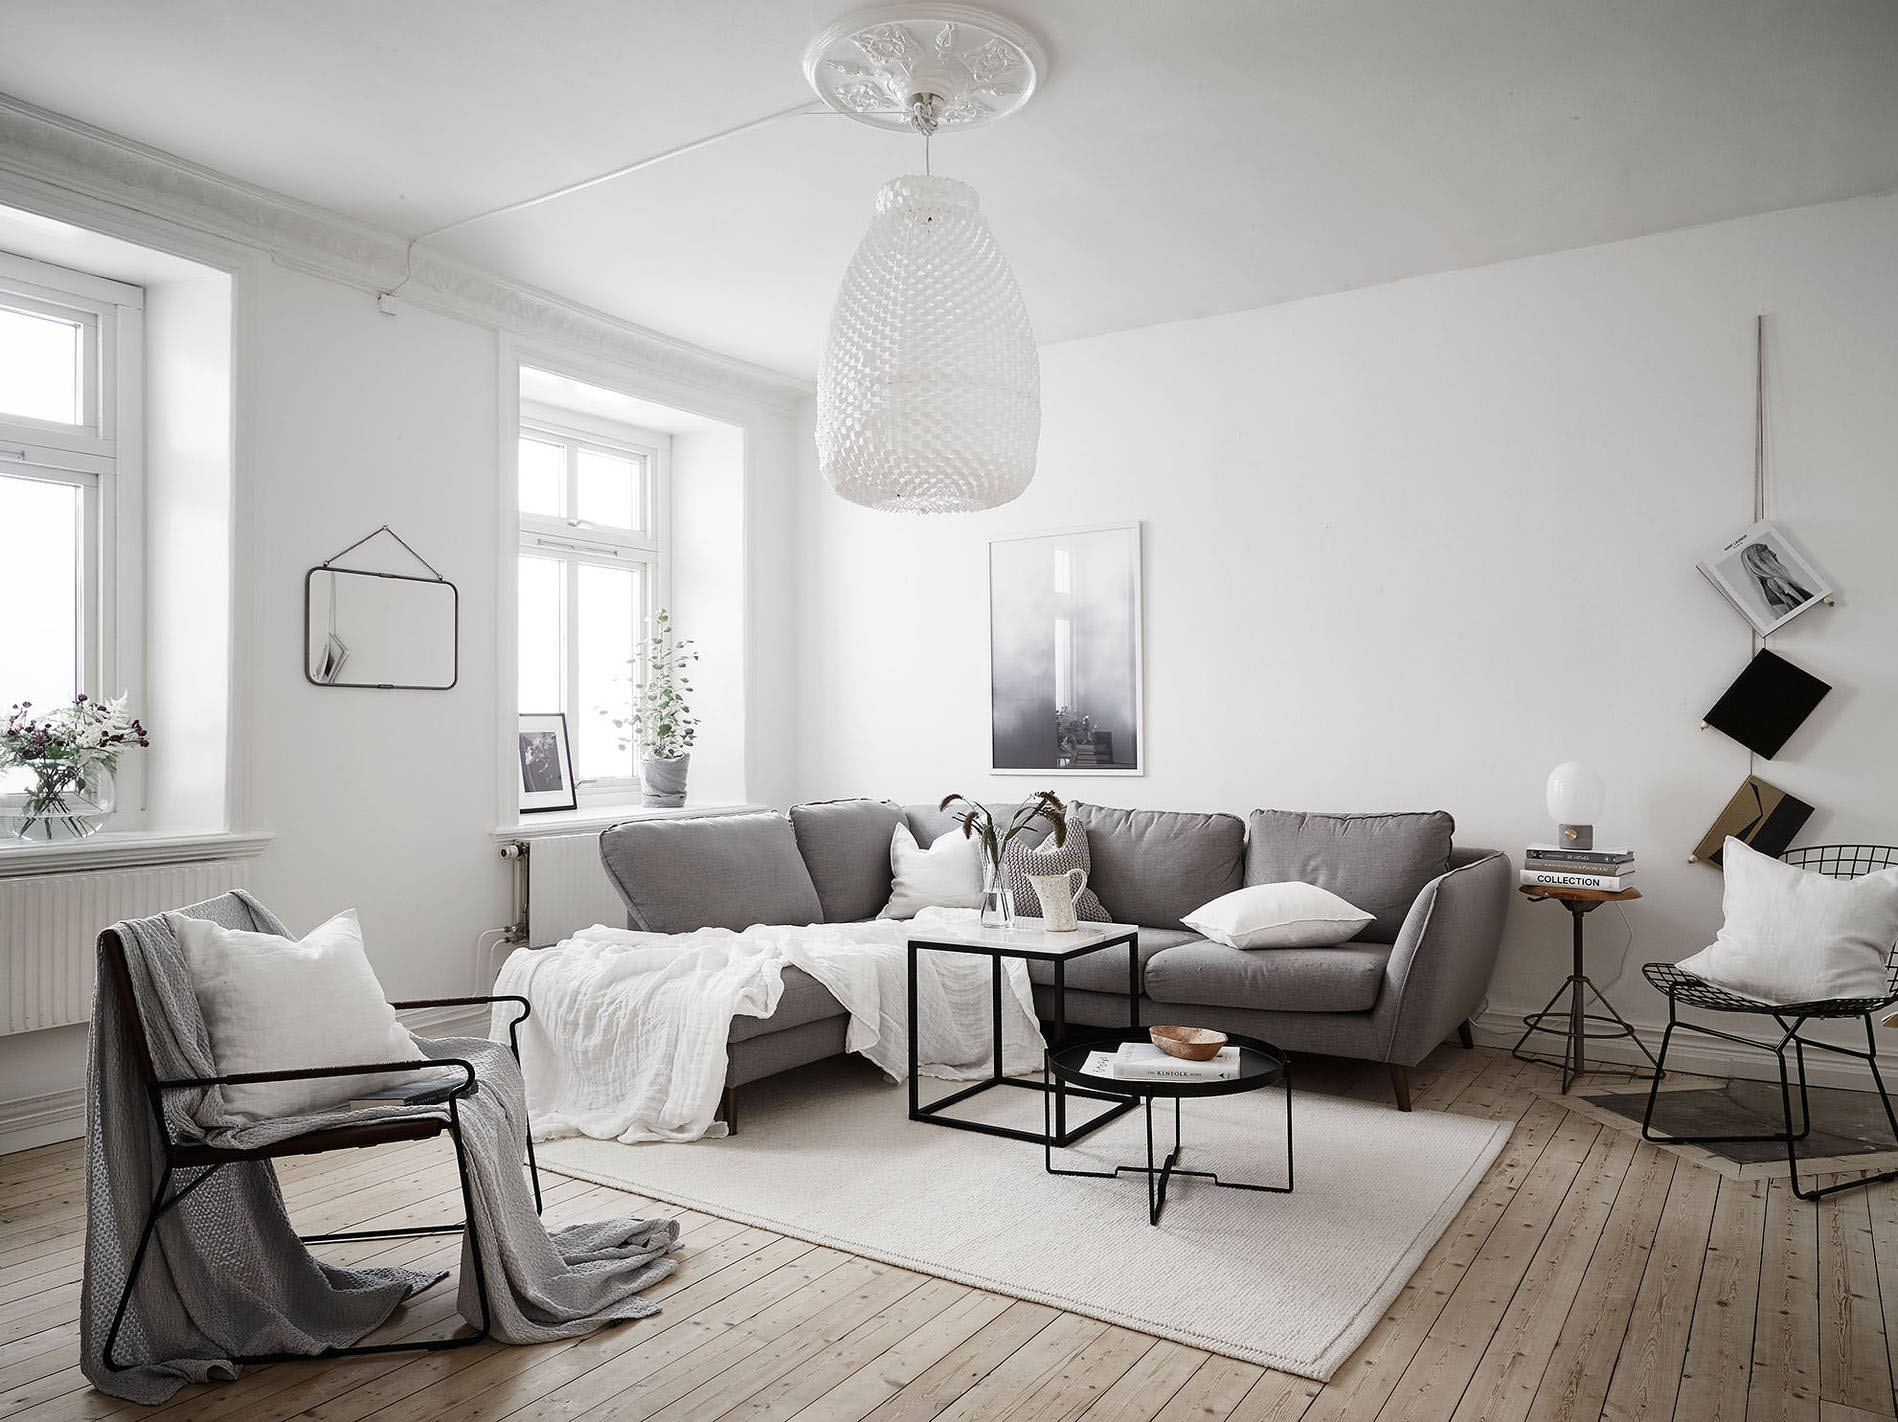 Scandinavian living room with large pendant lamp - Top 10 tips for adding Scandinavian  style to